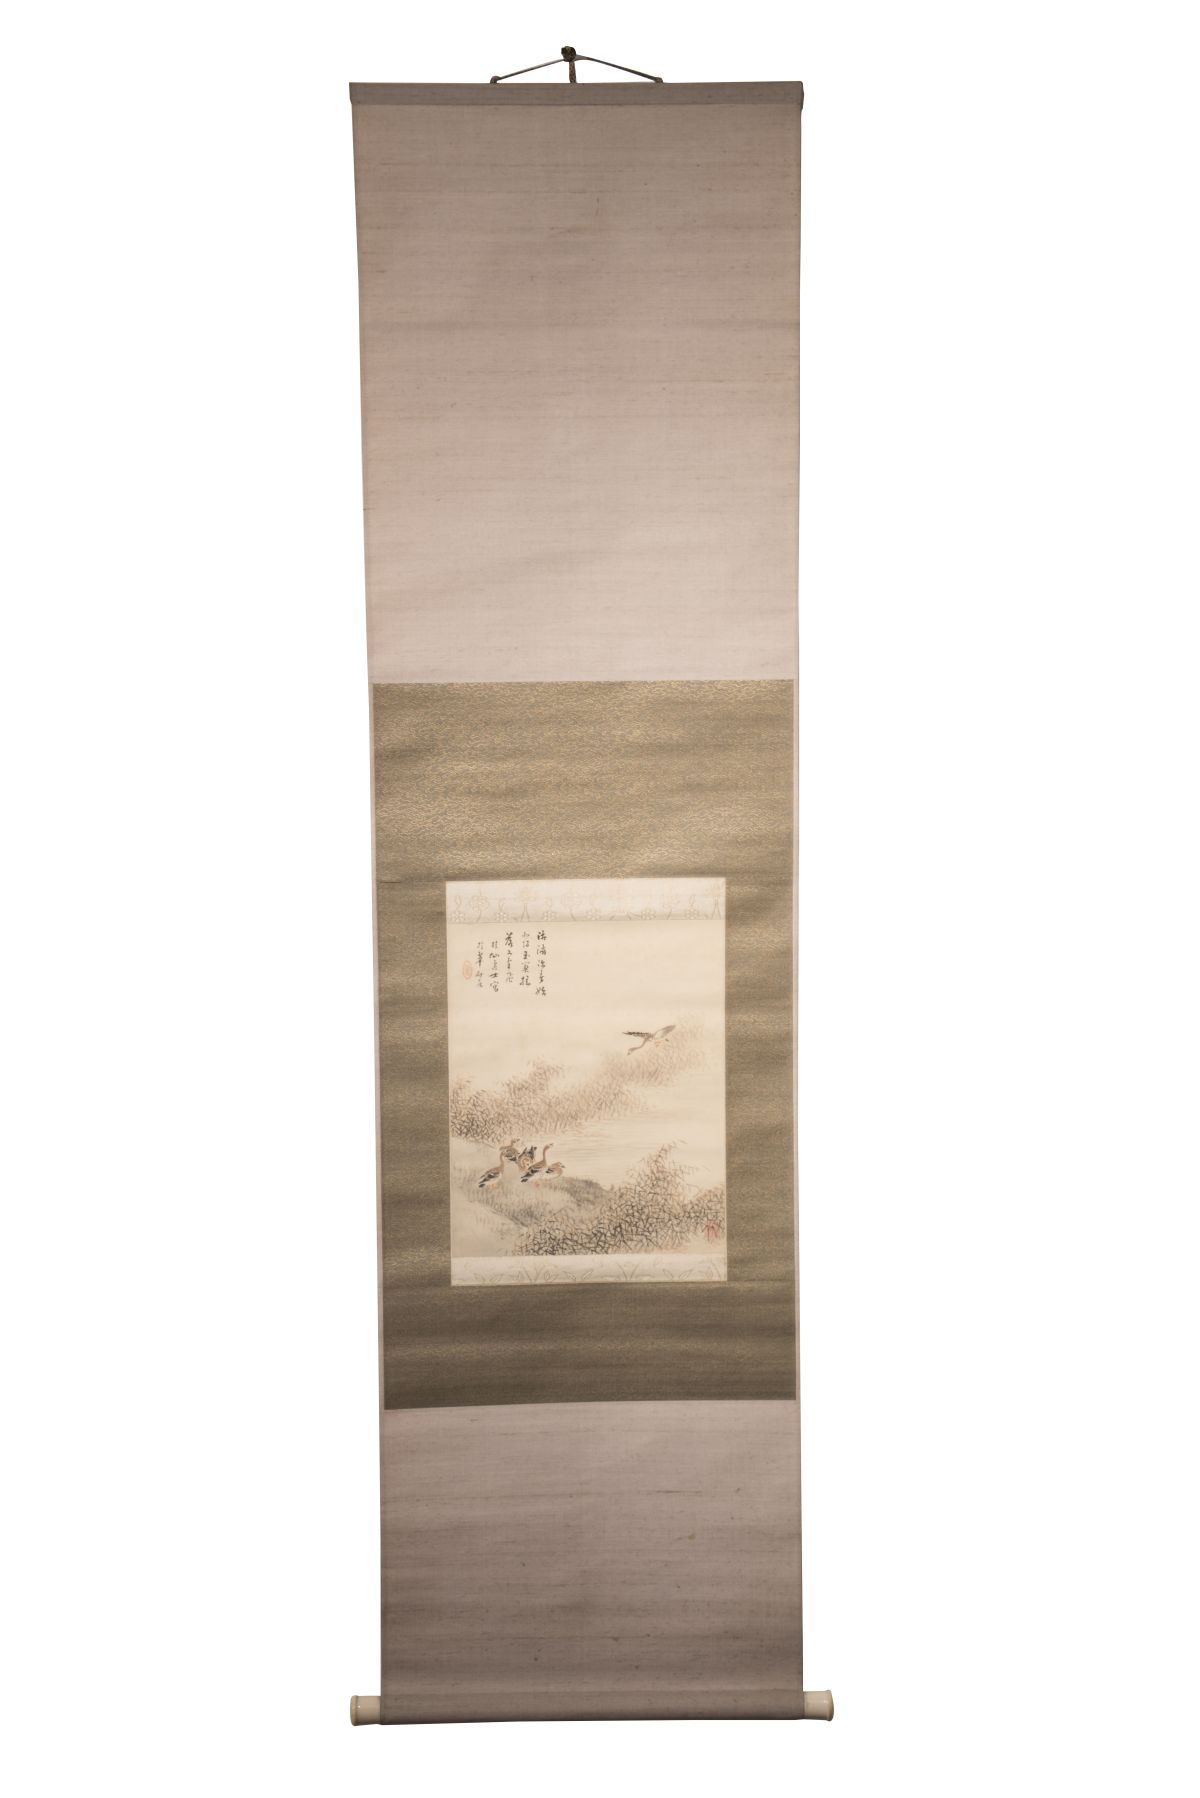 #83 Hanging scroll with gray geese | Hängerolle mit Graugänsen Image